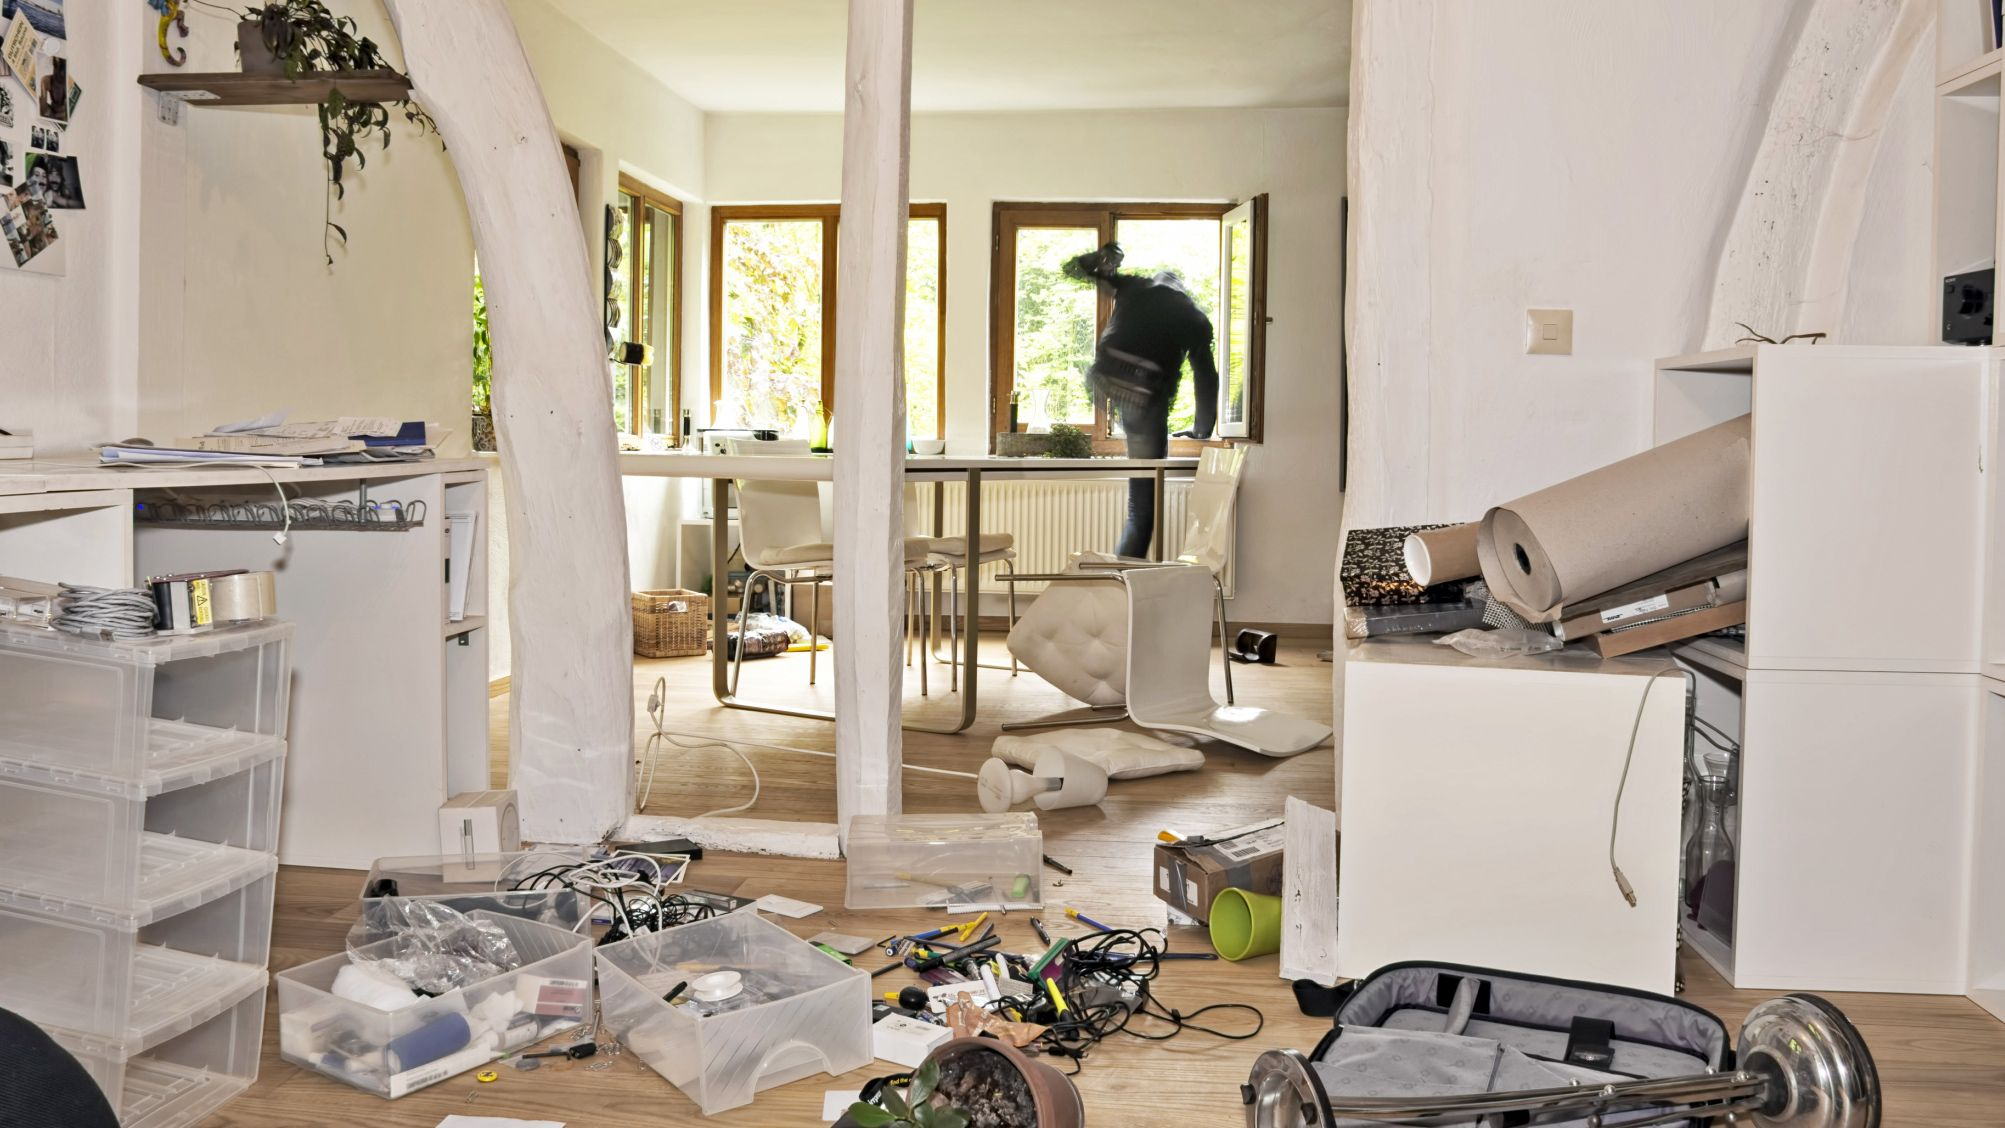 What I Learned When Burglars Broke Into My Home   Home ...